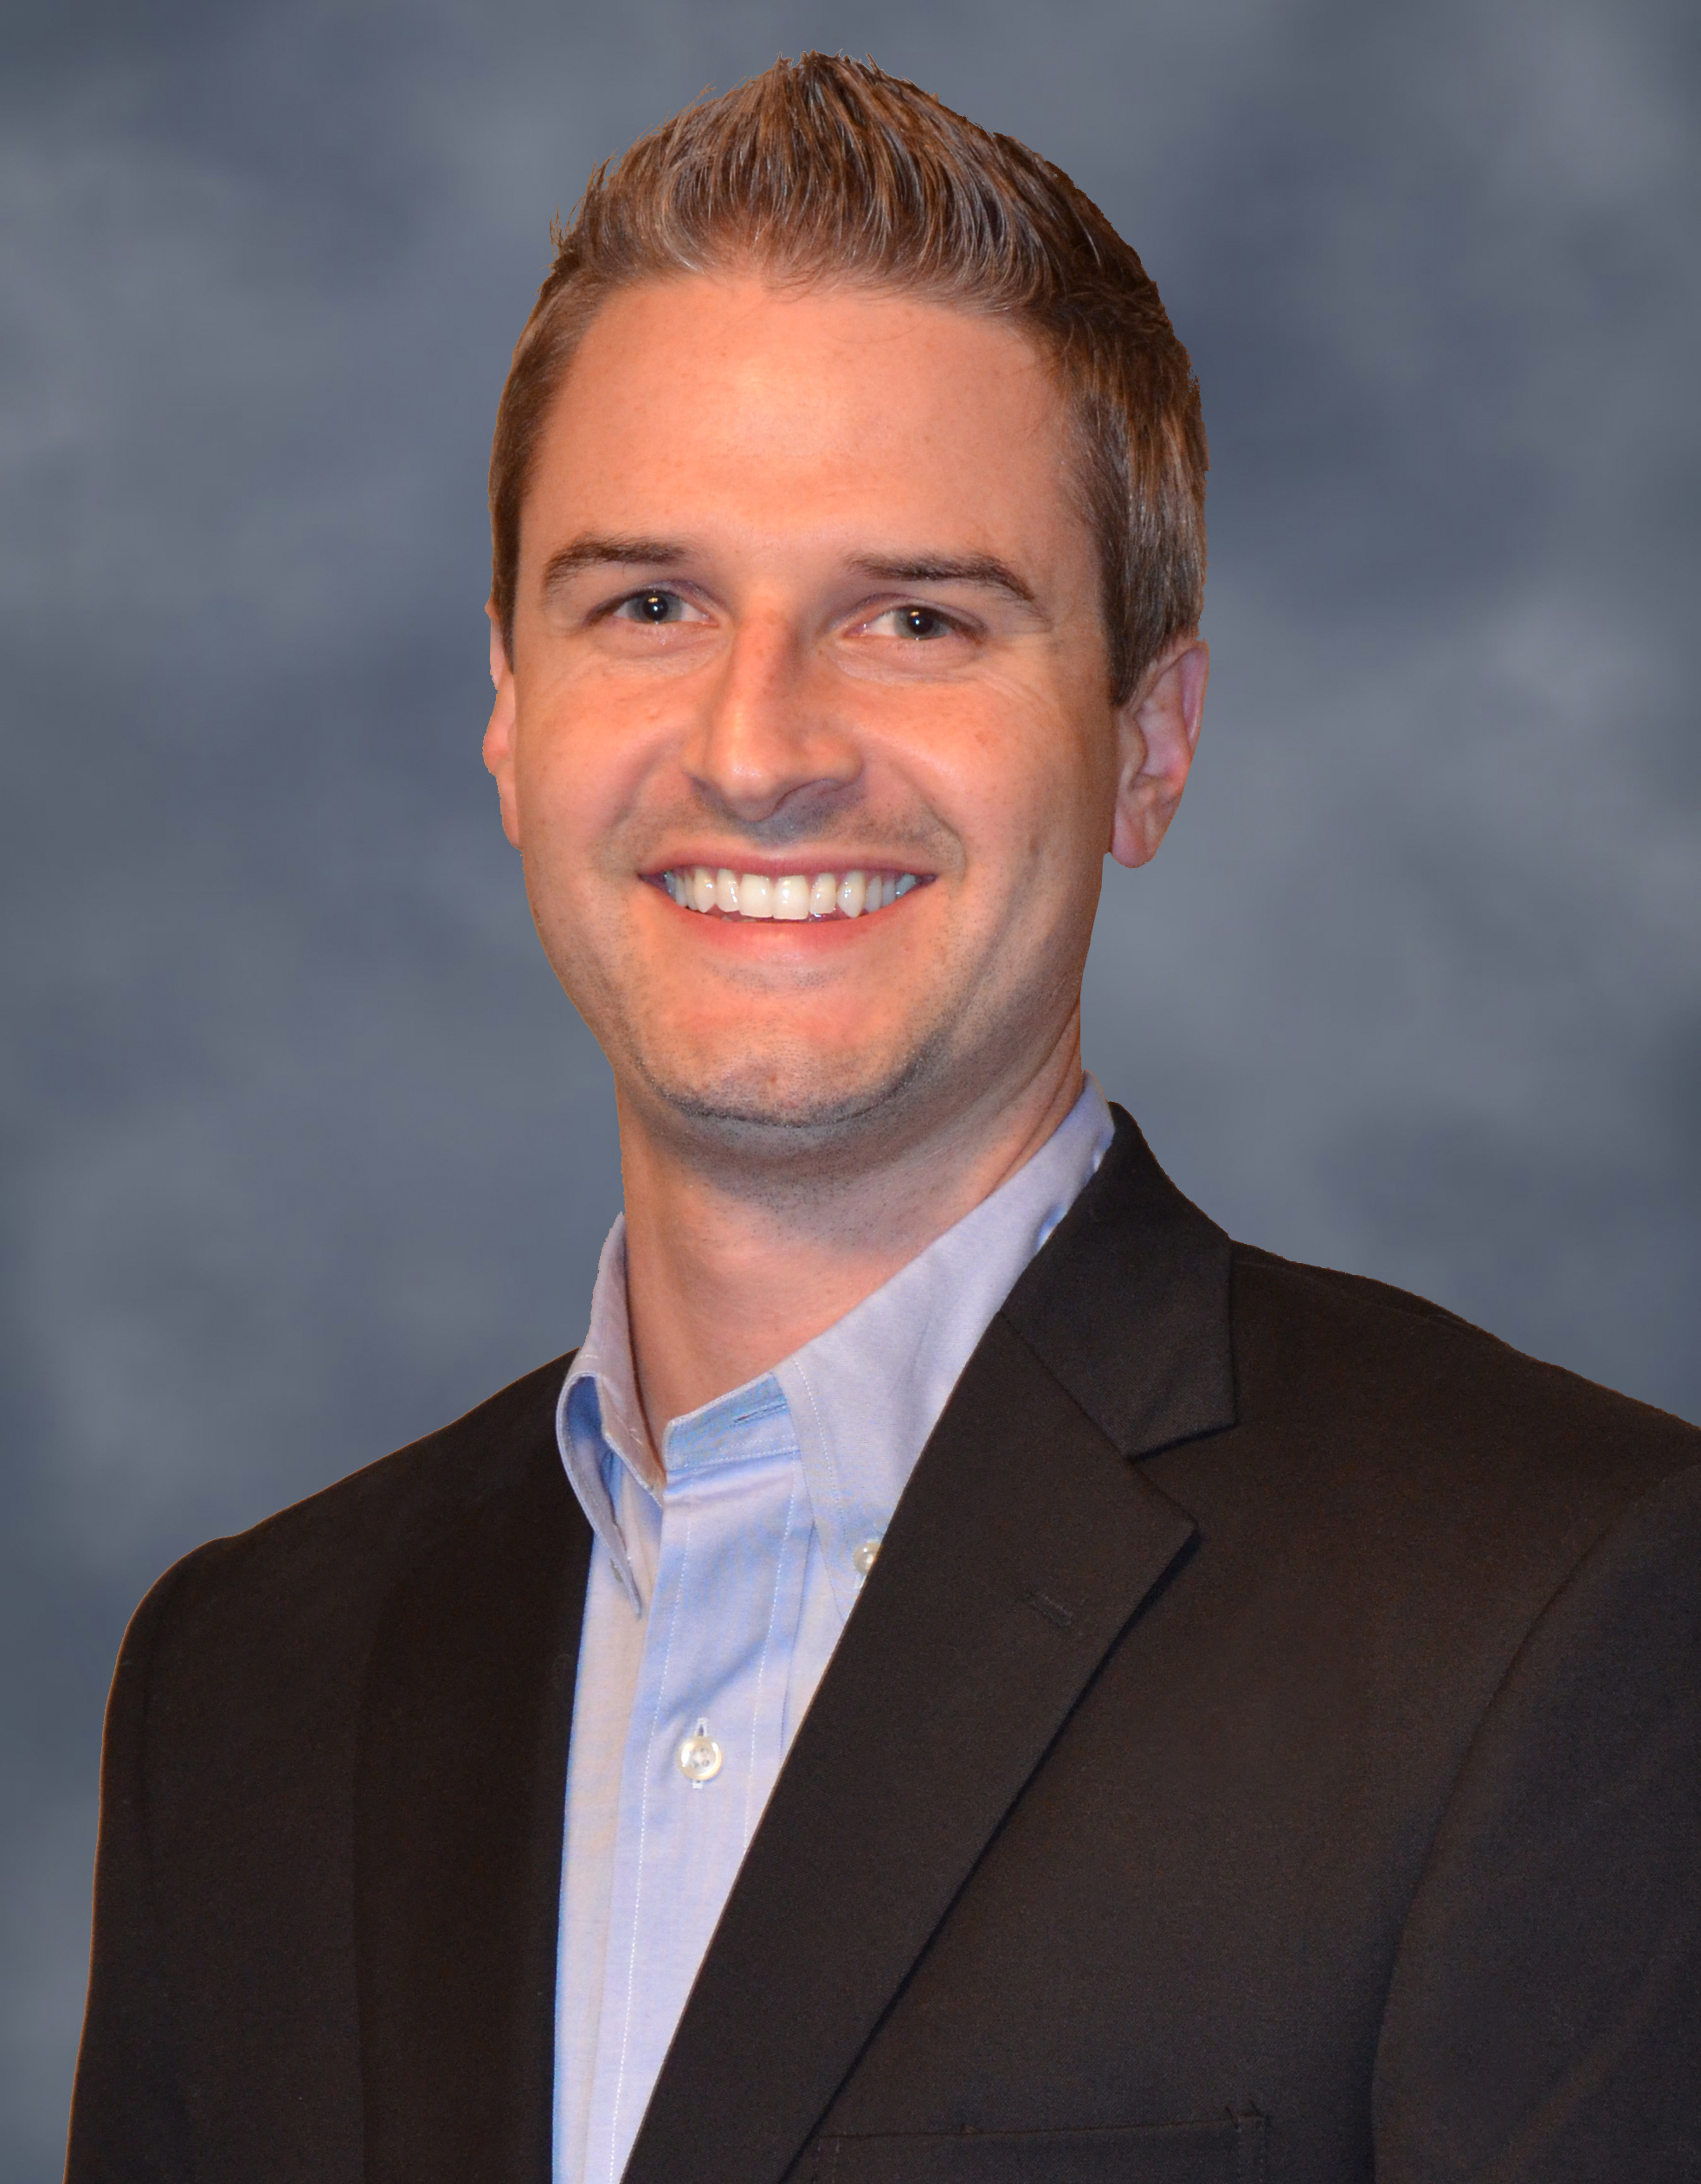 David Little Joins Ngn As Vp Of Network Operations